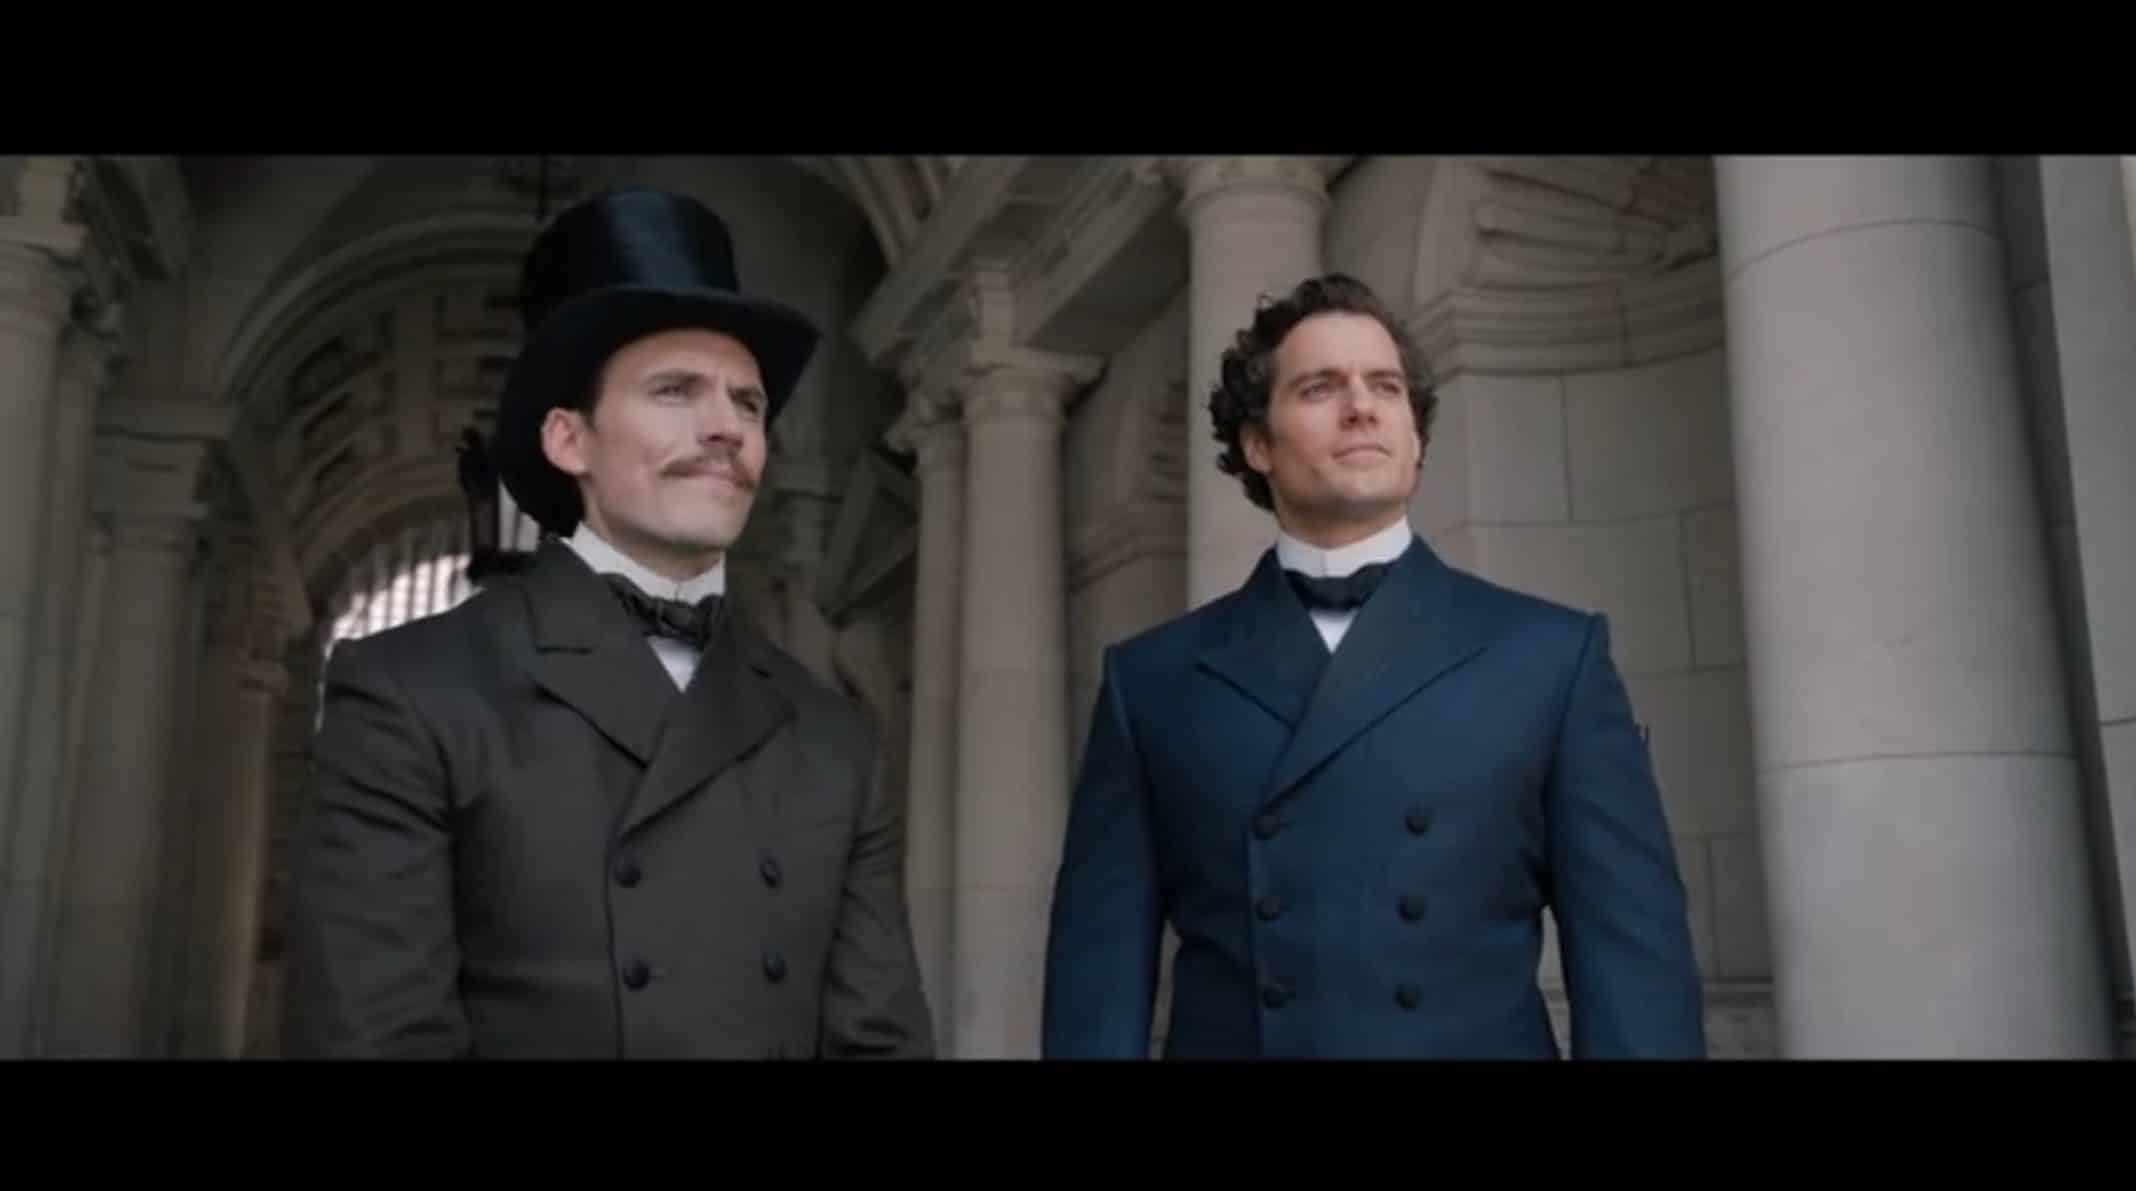 Mycroft (Sam Claflin) and Sherlock (Henry Cavill) Holmes waiting on their sister to arrive.